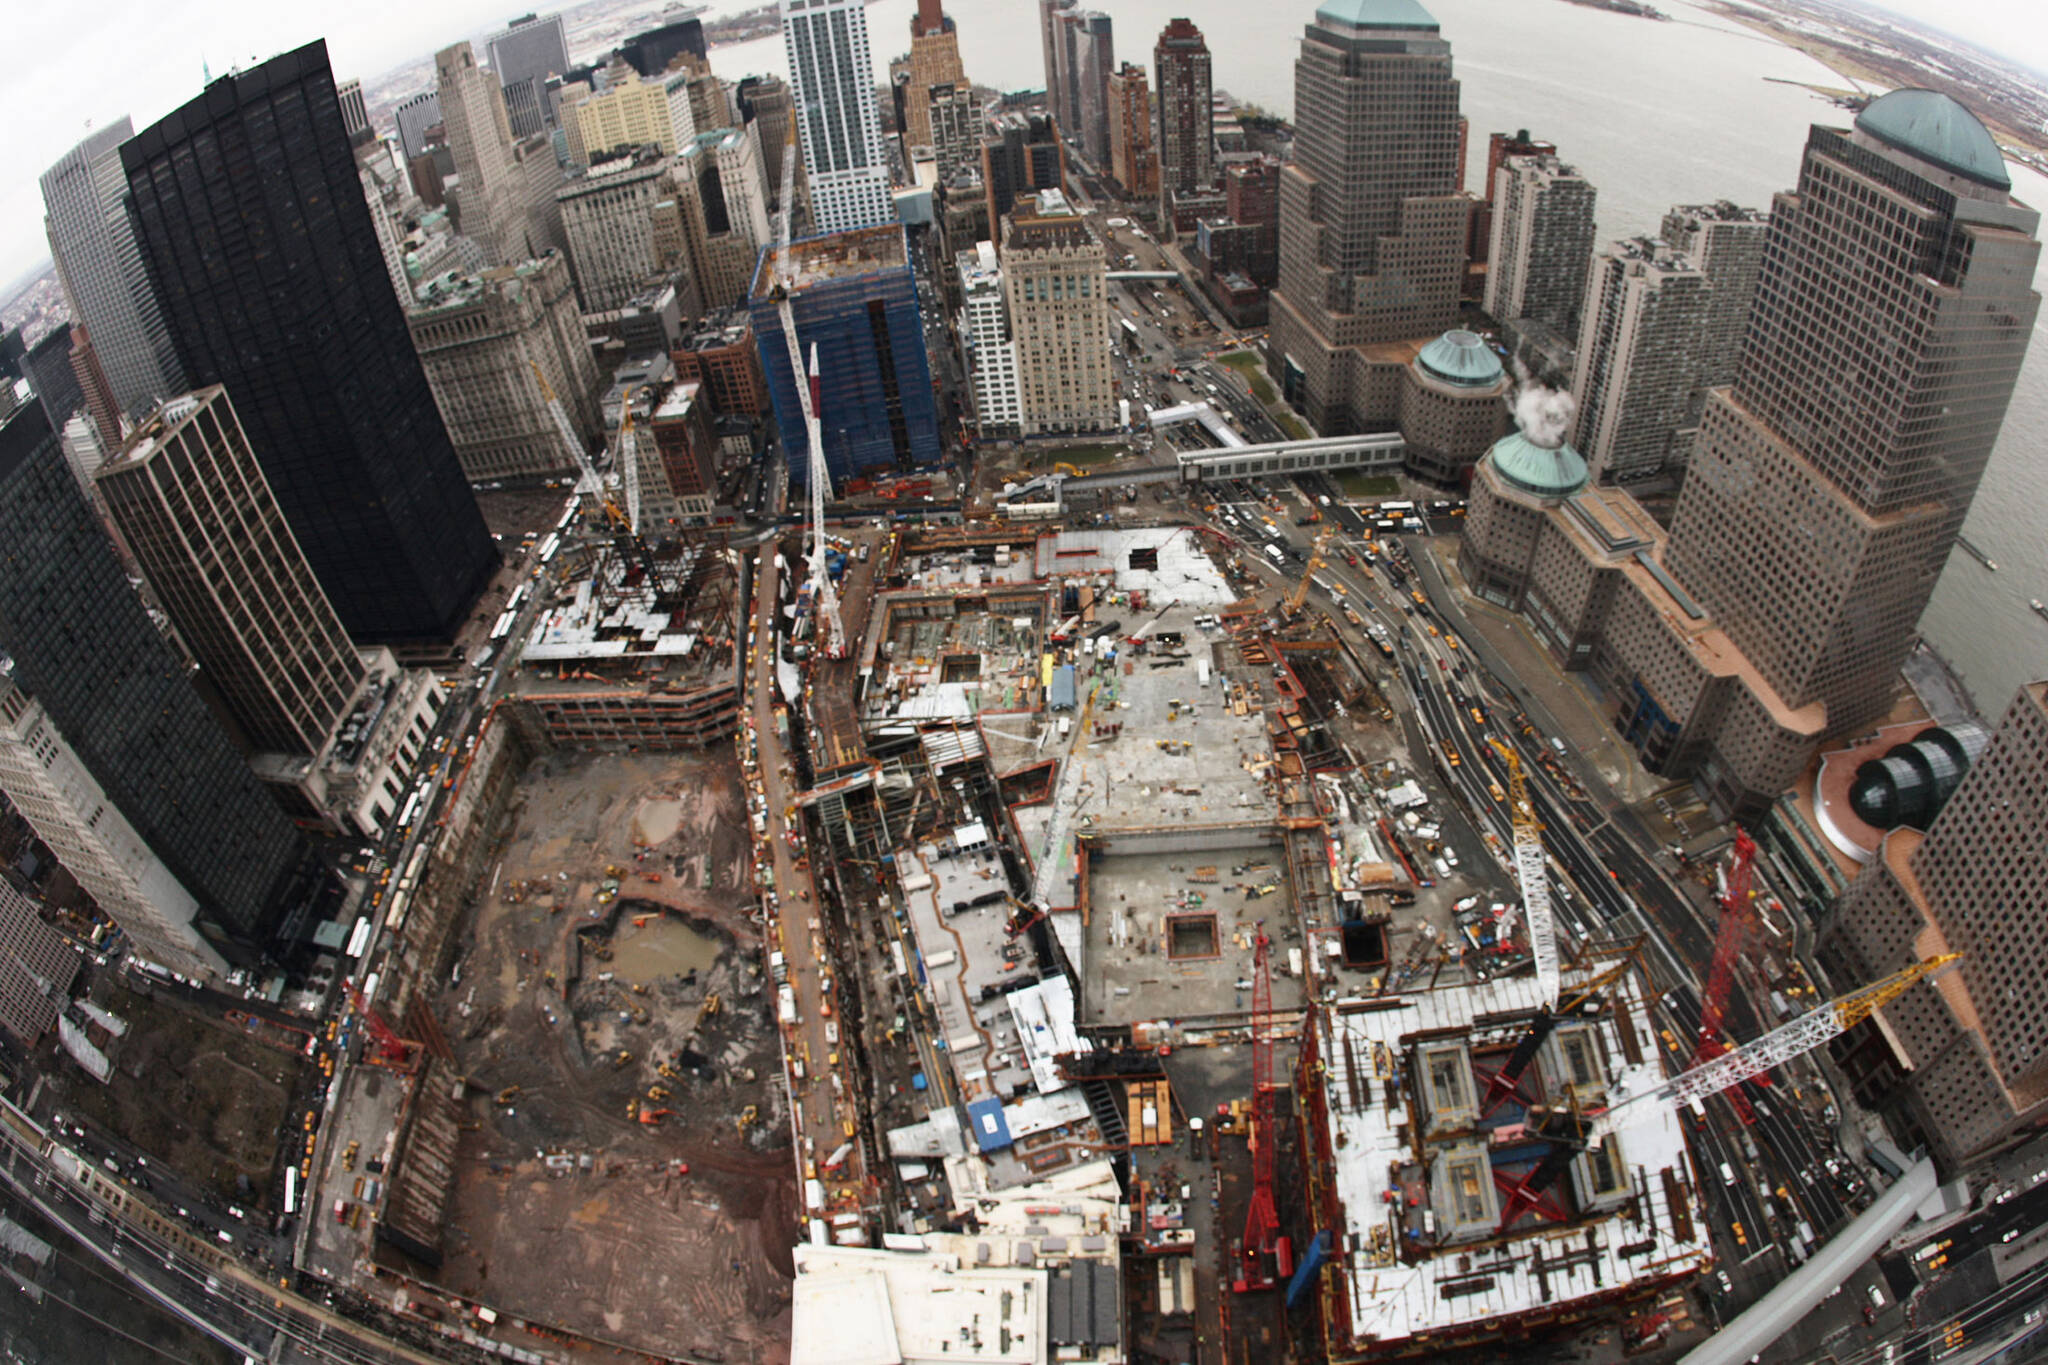 View of the foundations of the Ground Zero area rebuilding project for the Rising: Rebuilding Ground Zero documentary Co-produced by Danny Forster and Steven Spielberg about the rebuilding of the World Trade Center site in the wake of 9/11.